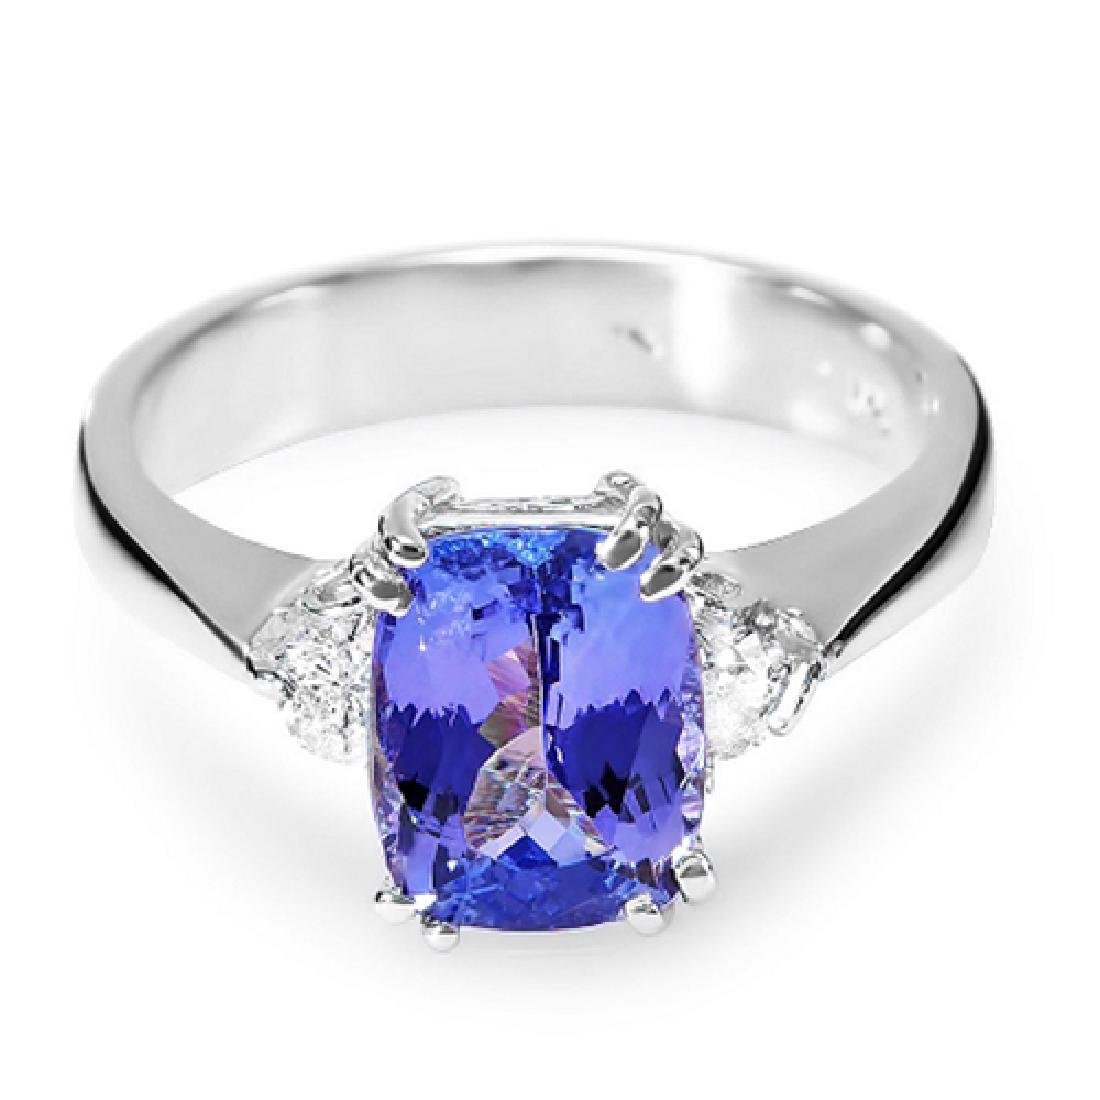 2.41 Carat Natural Tanzanite 18K Solid White Gold